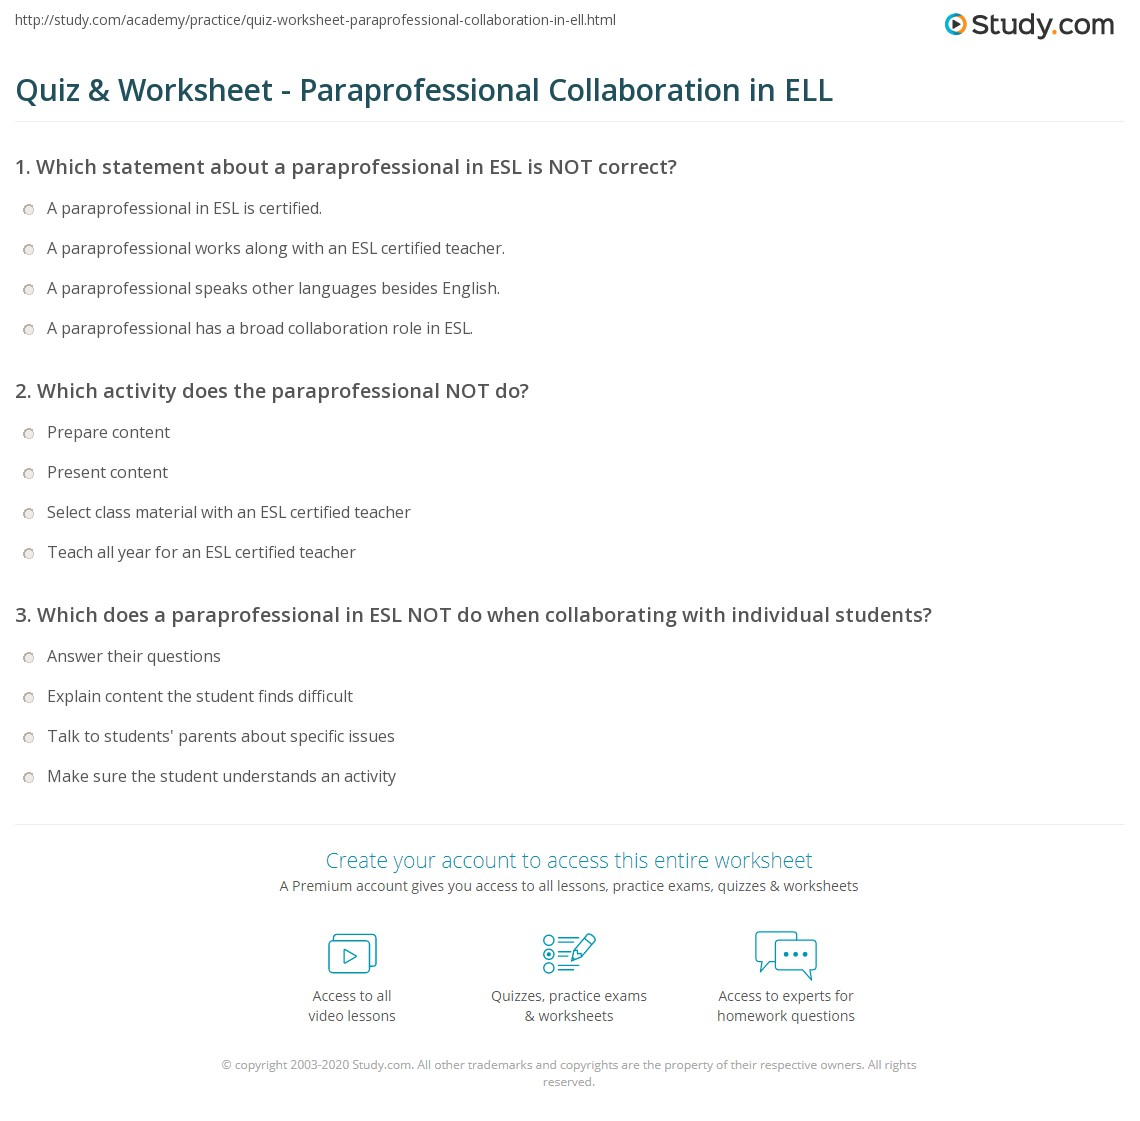 Quiz Worksheet Paraprofessional Collaboration In Ell Study